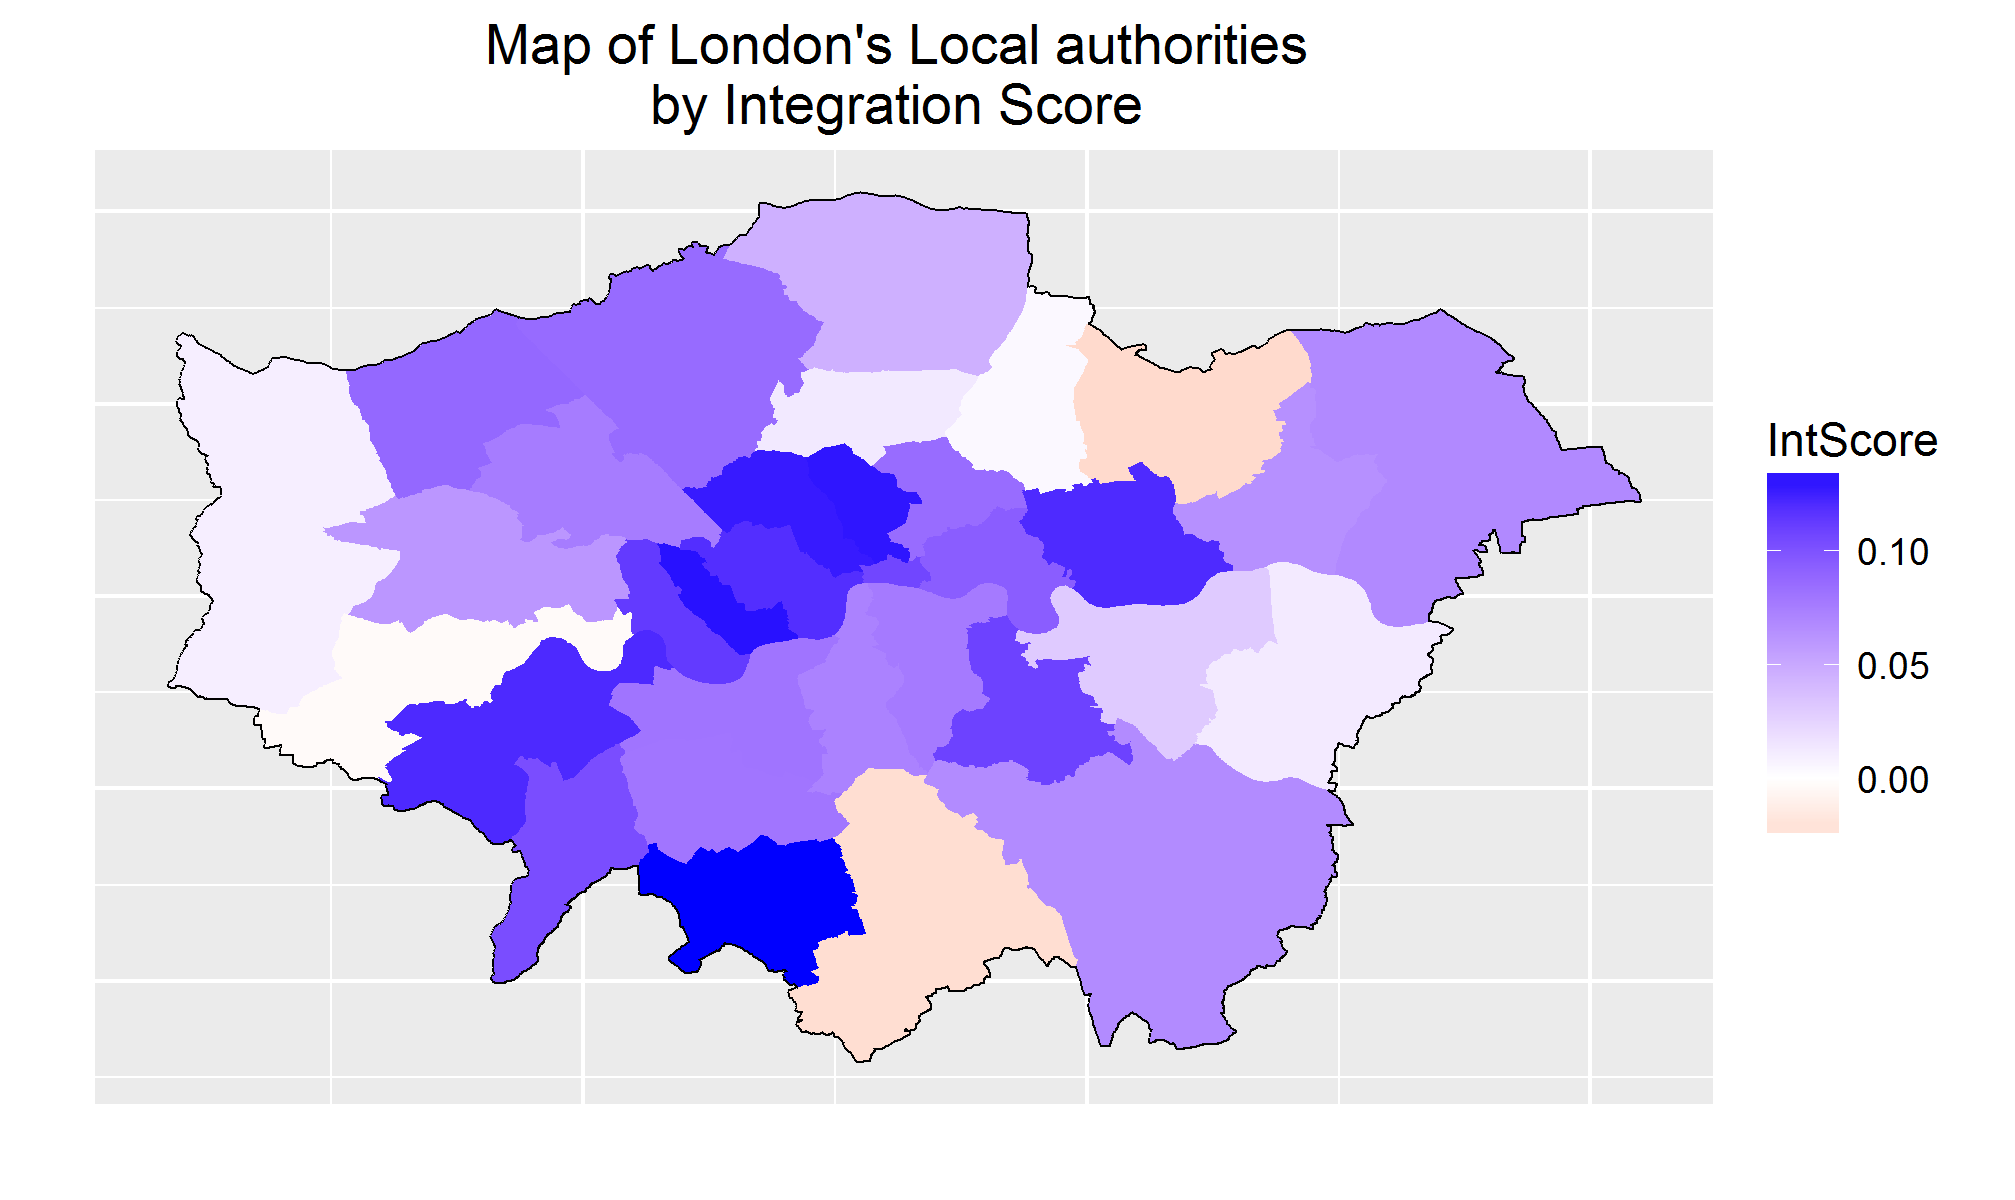 London Boroughs are generally more integrated than expected, however Redbridge, Hounslow and Croydon, are more segregated.